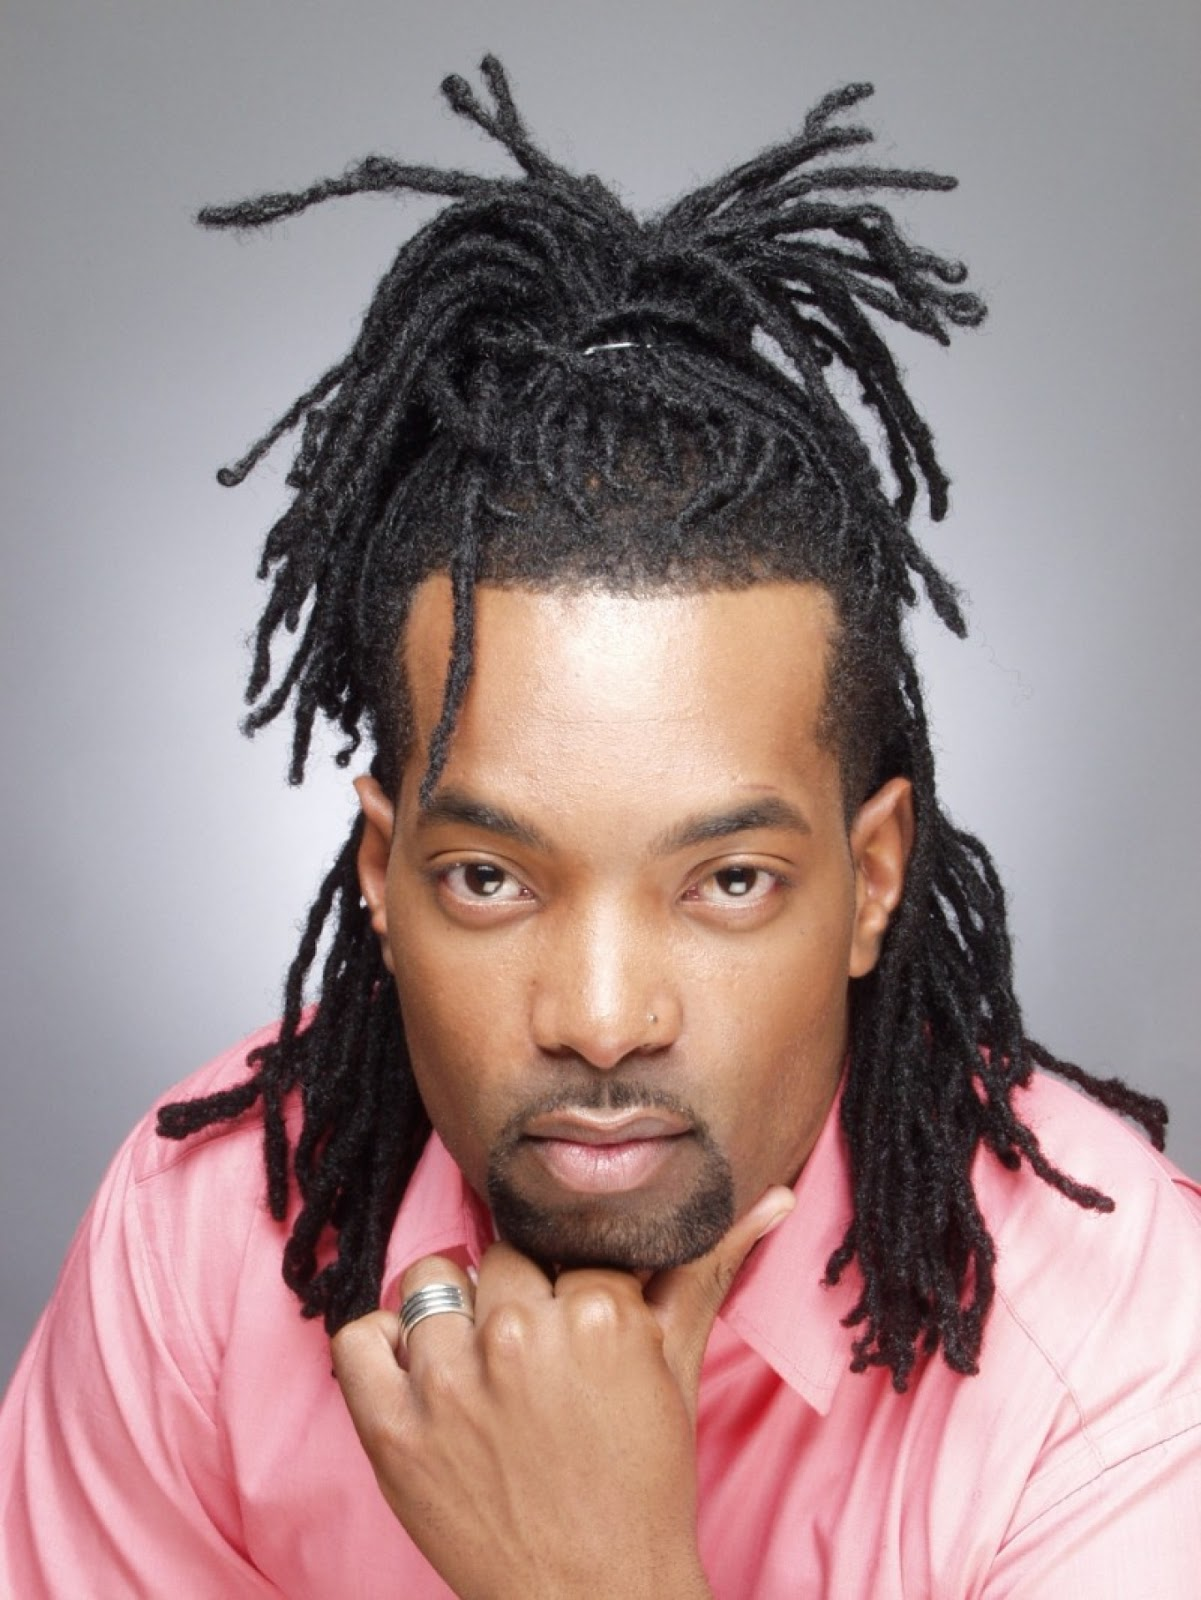 39 Dreadlock hairstyles for men | Hairstylo